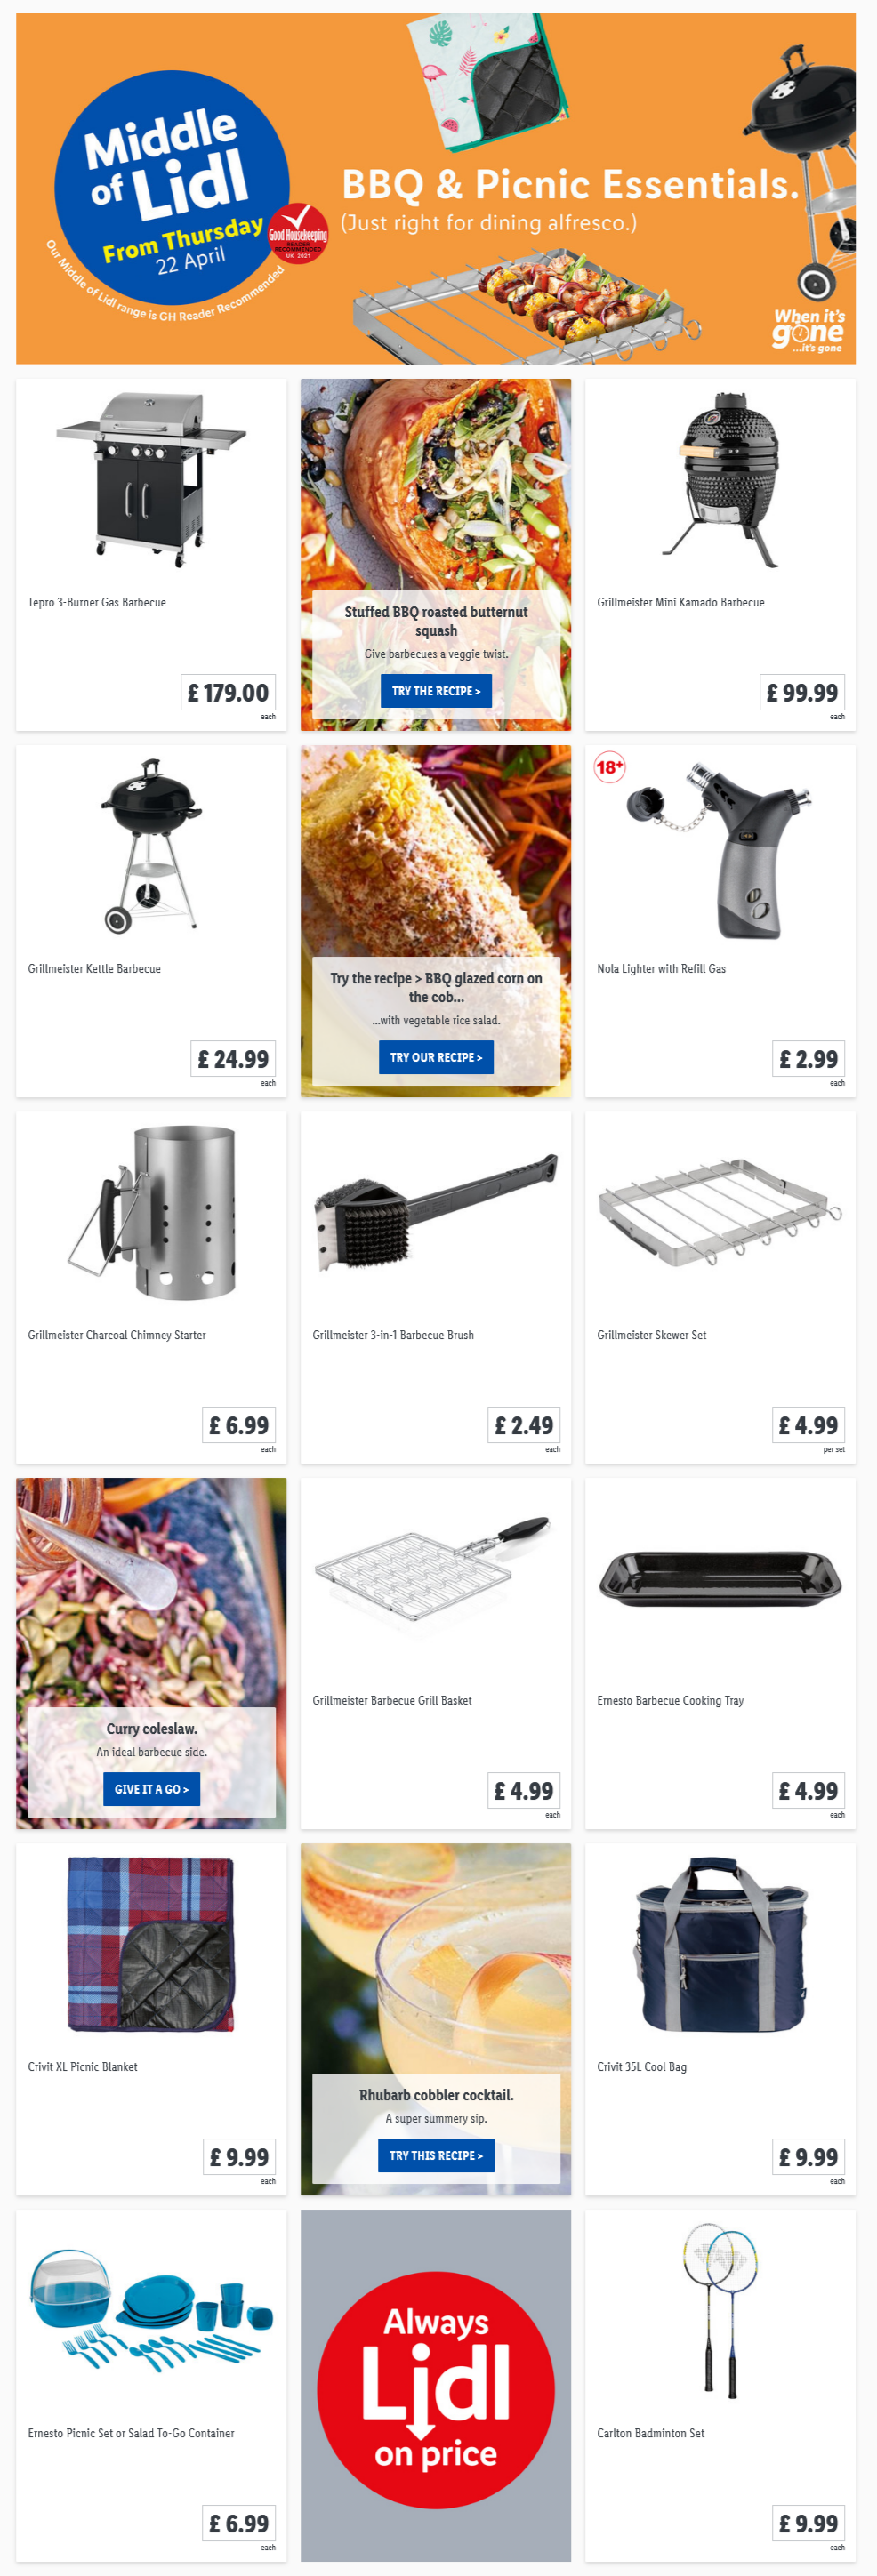 LIDL Offers this Thursday BBQ Picnic Essentials From 22nd April 2021